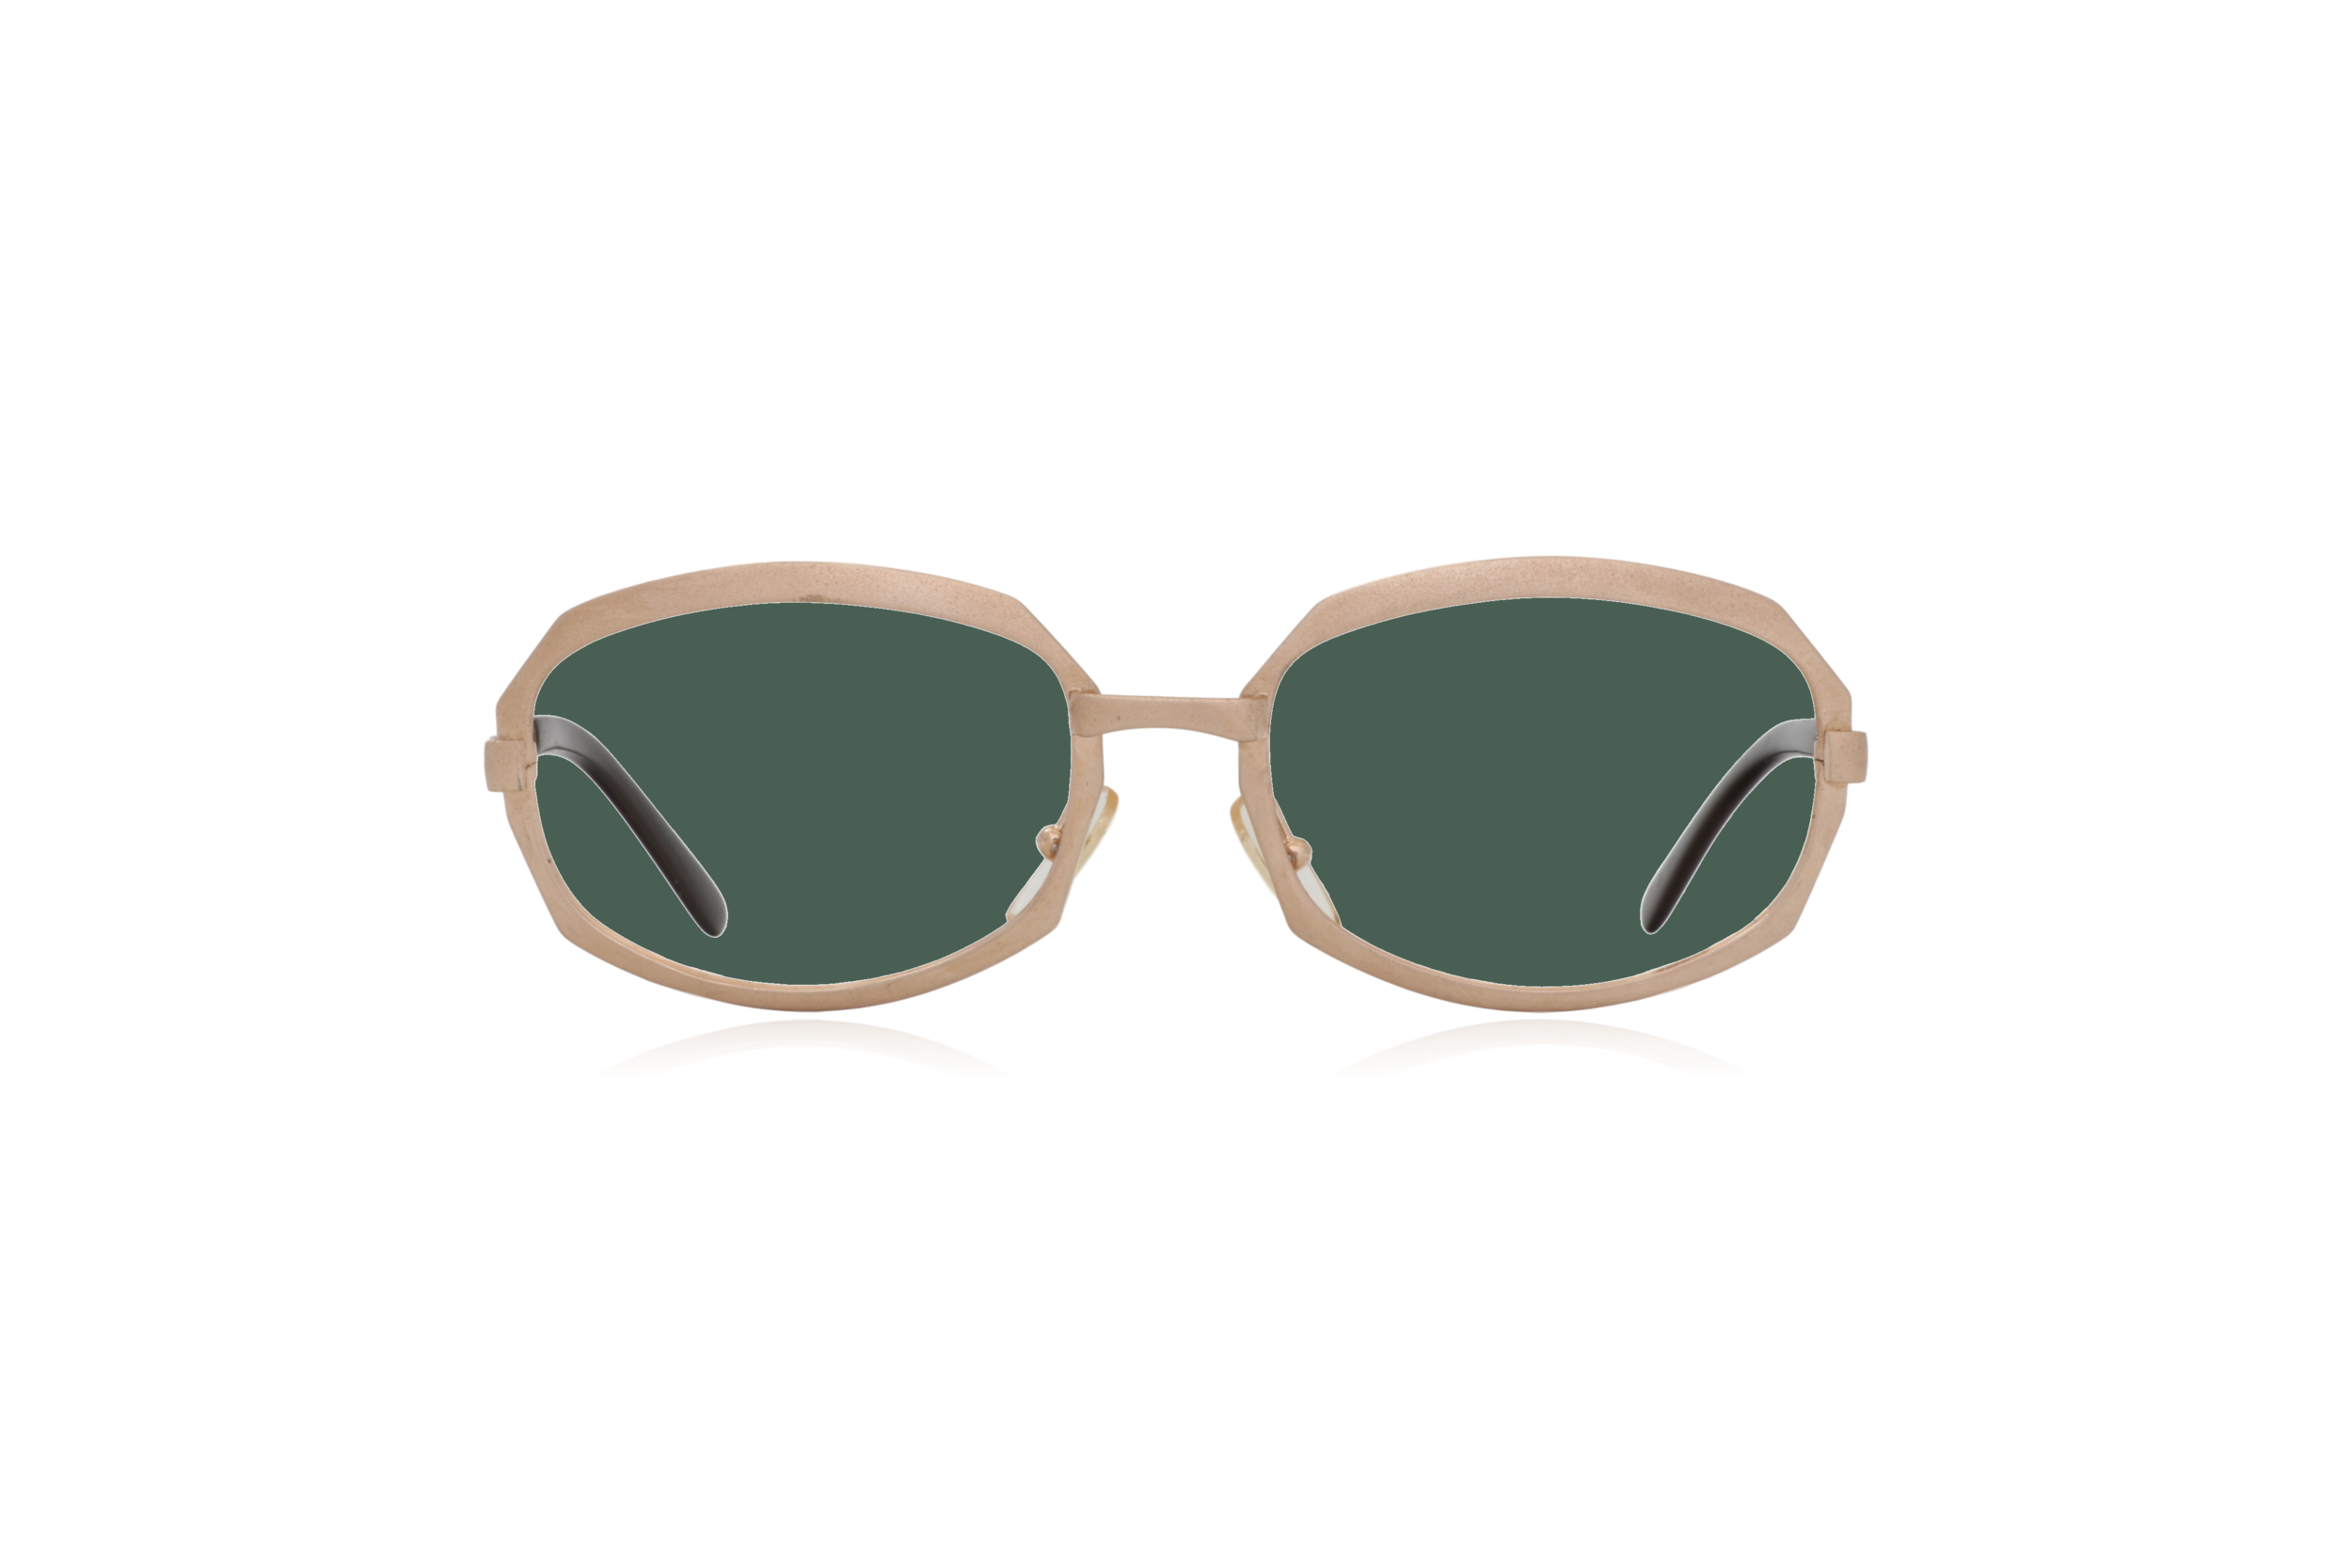 Peep Eyewear, Vintage Glasses, Gold Metal, Vicky, Cahours De Virgile, Paris, Front, Green.png